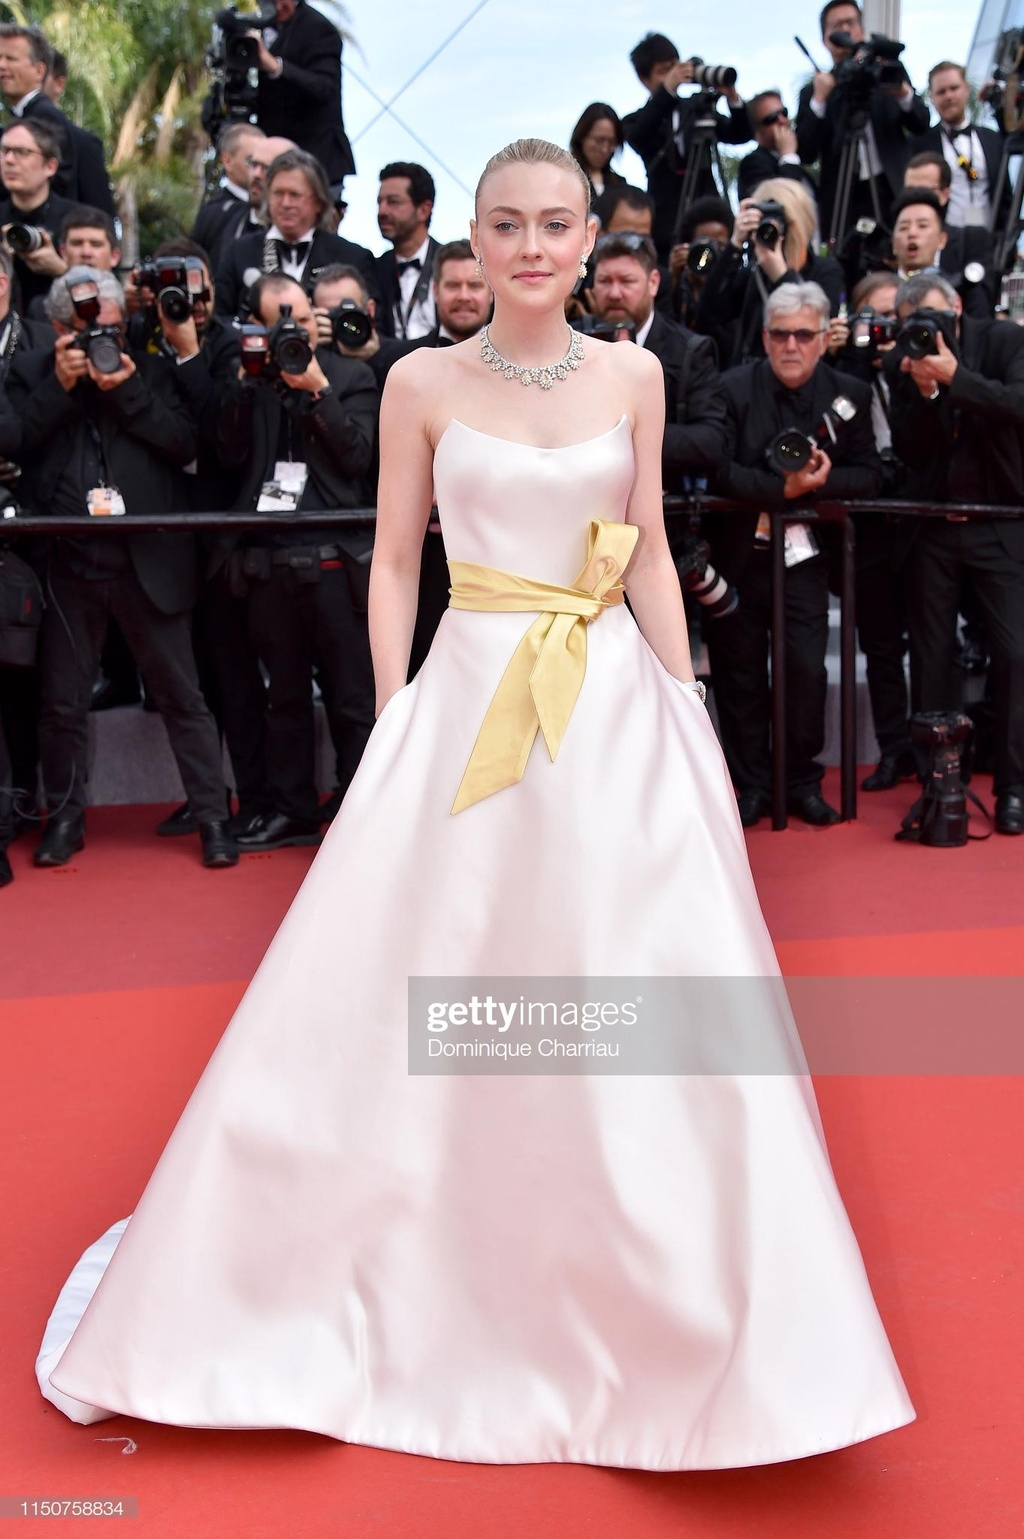 Lien hoan phim Cannes 2019 anh 10